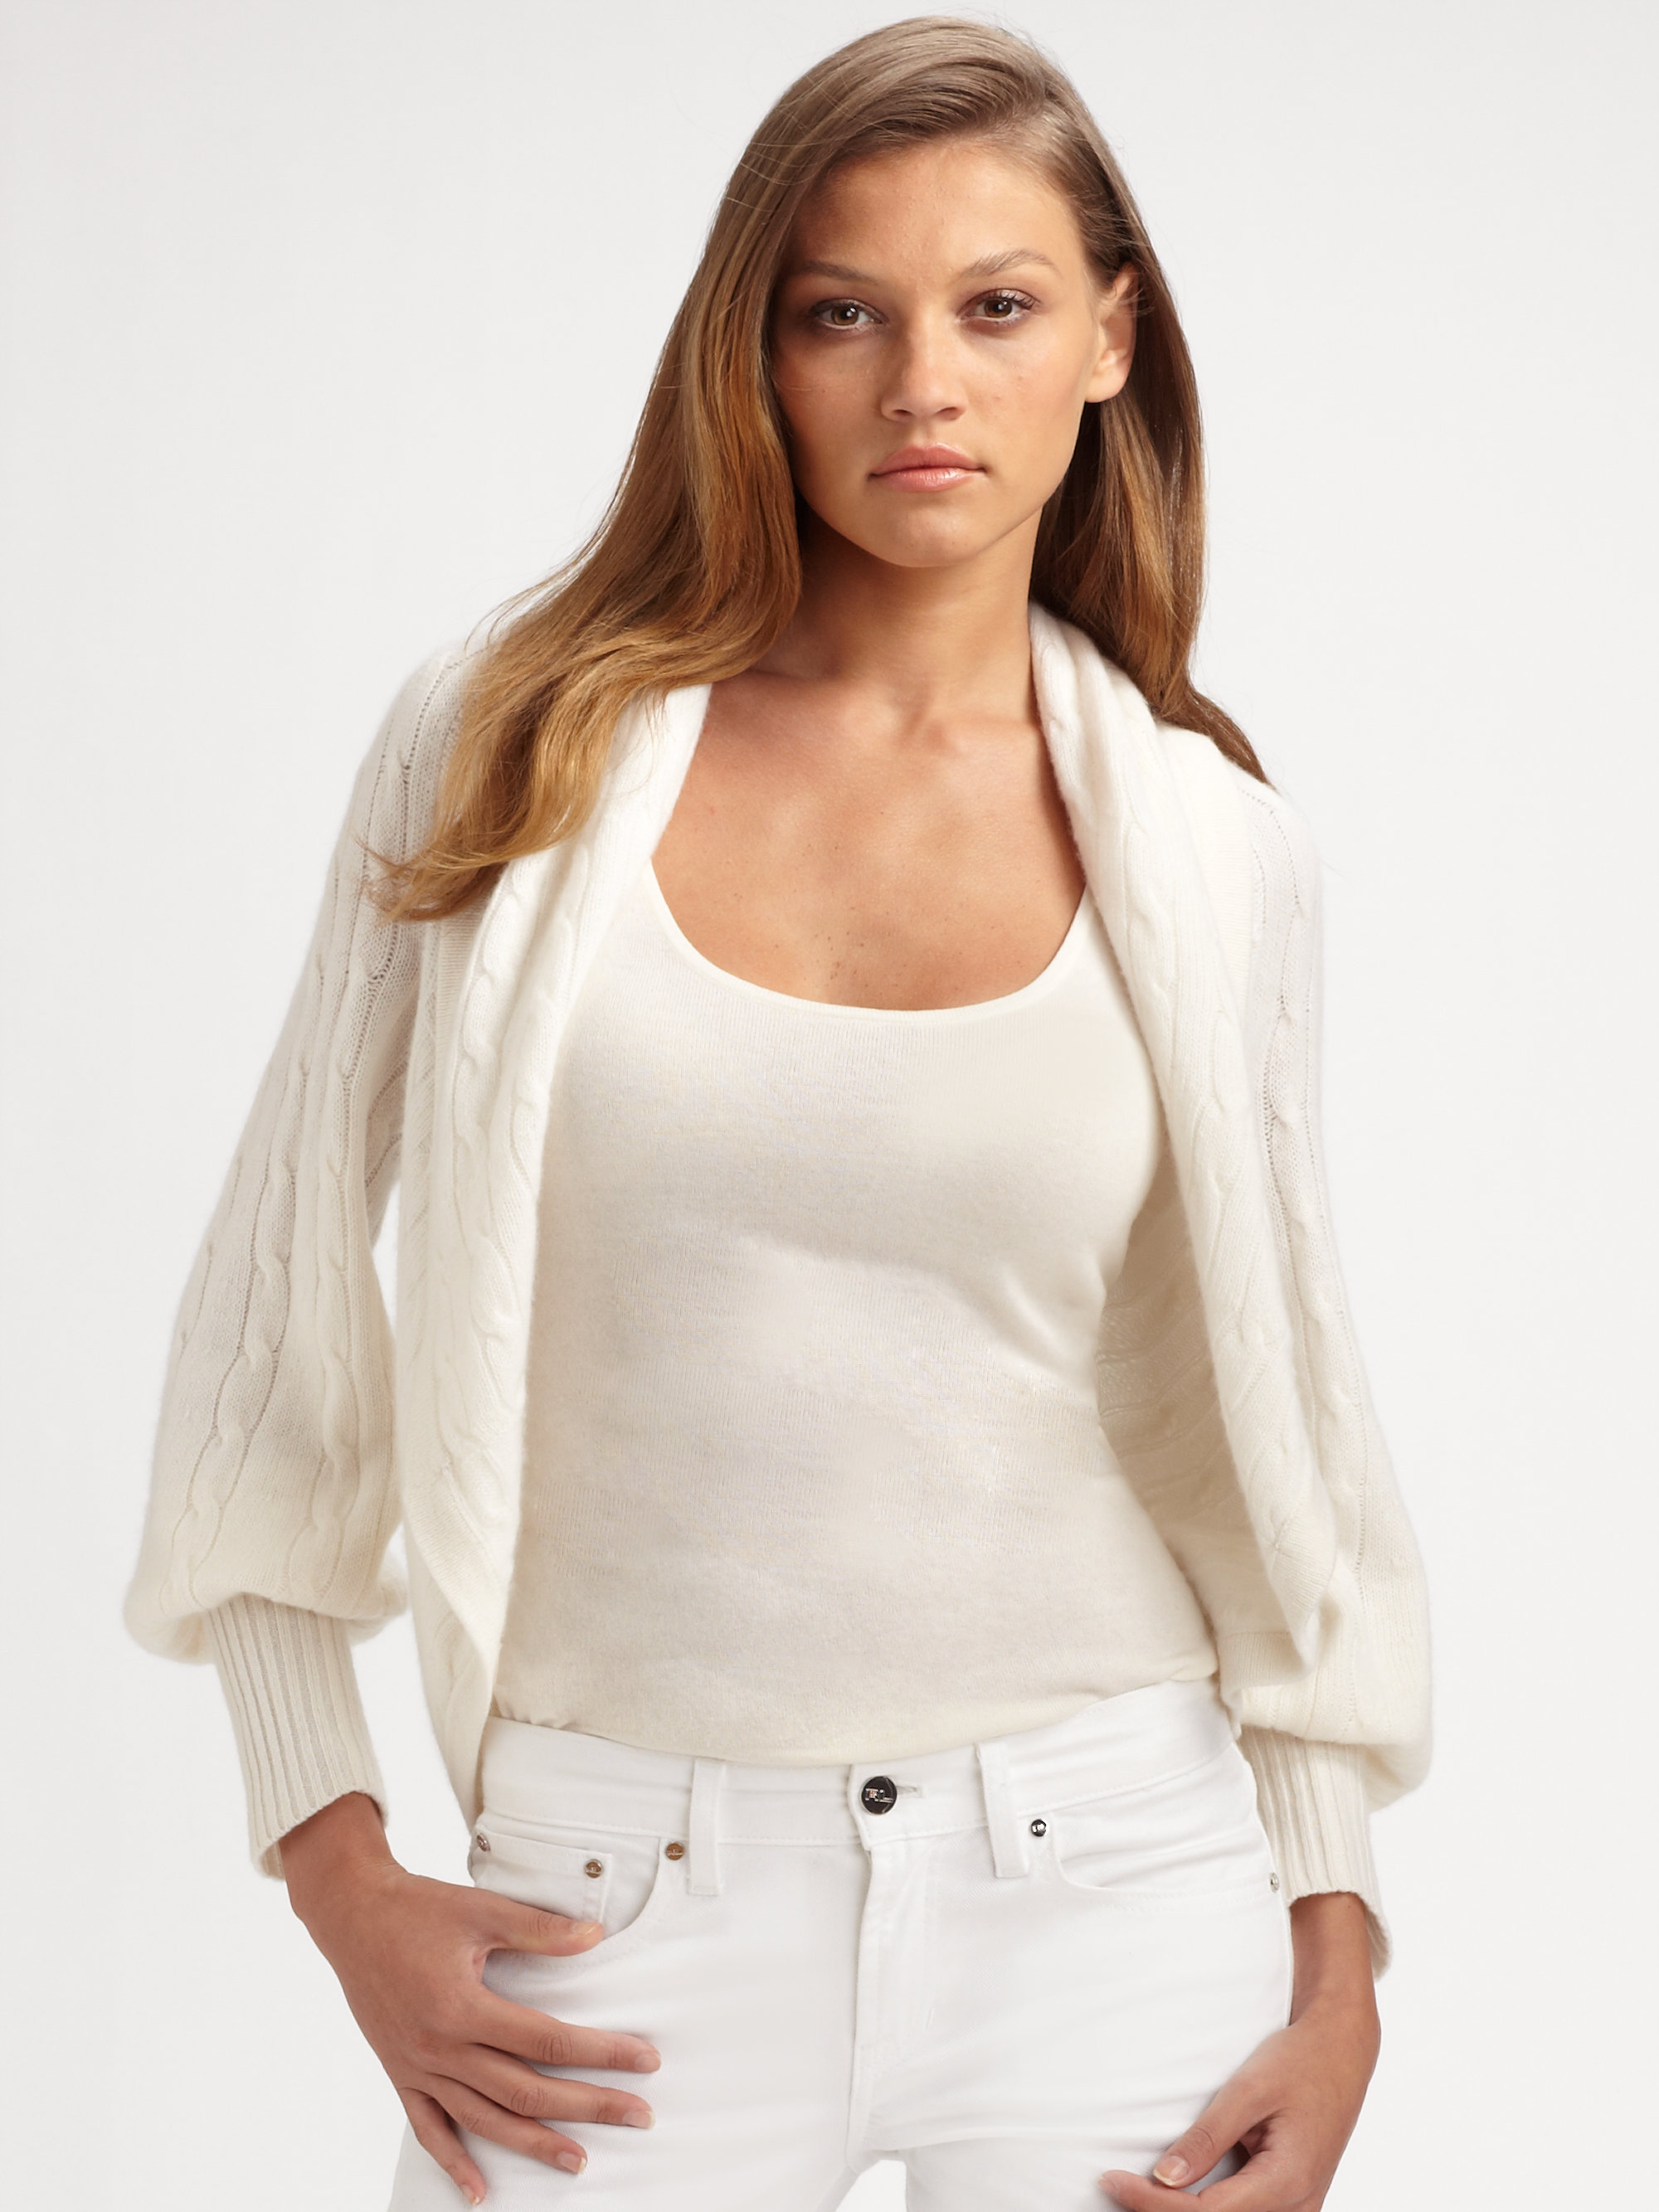 Ralph lauren black label Cashmere Cropped Circular Cardigan in ...